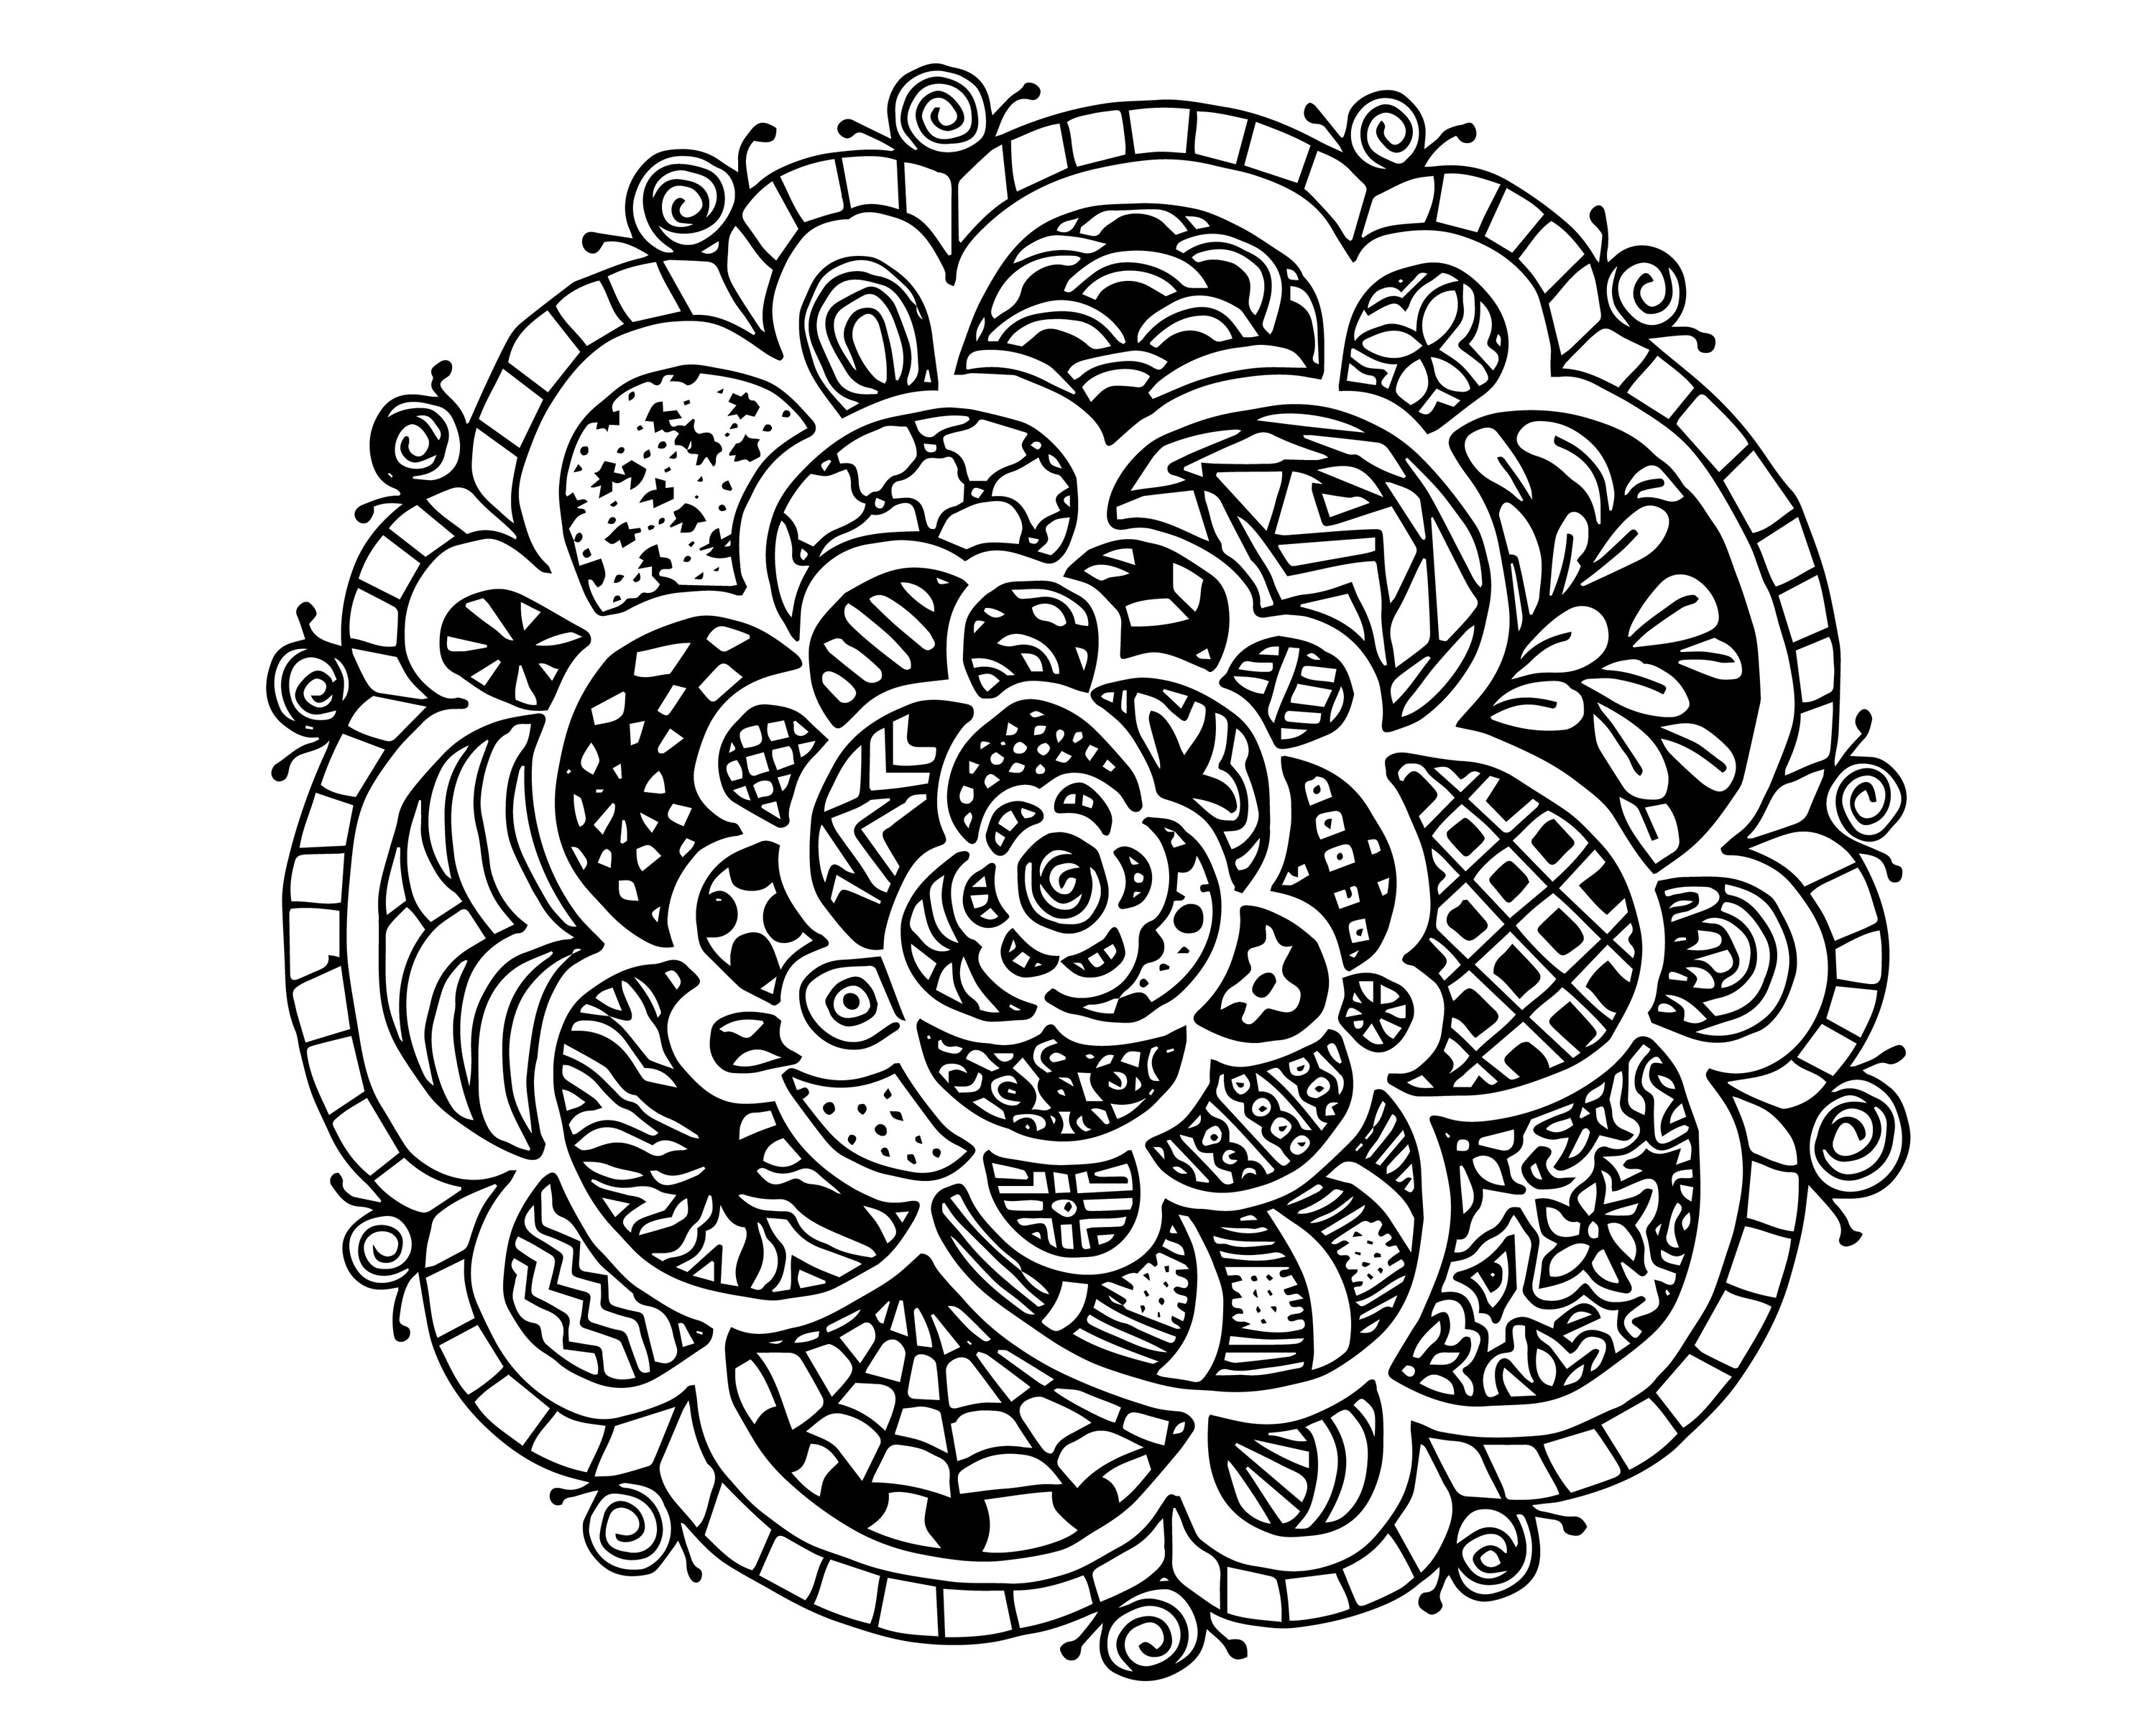 Colouring sheets hard - Hard Coloring Pages For Teens